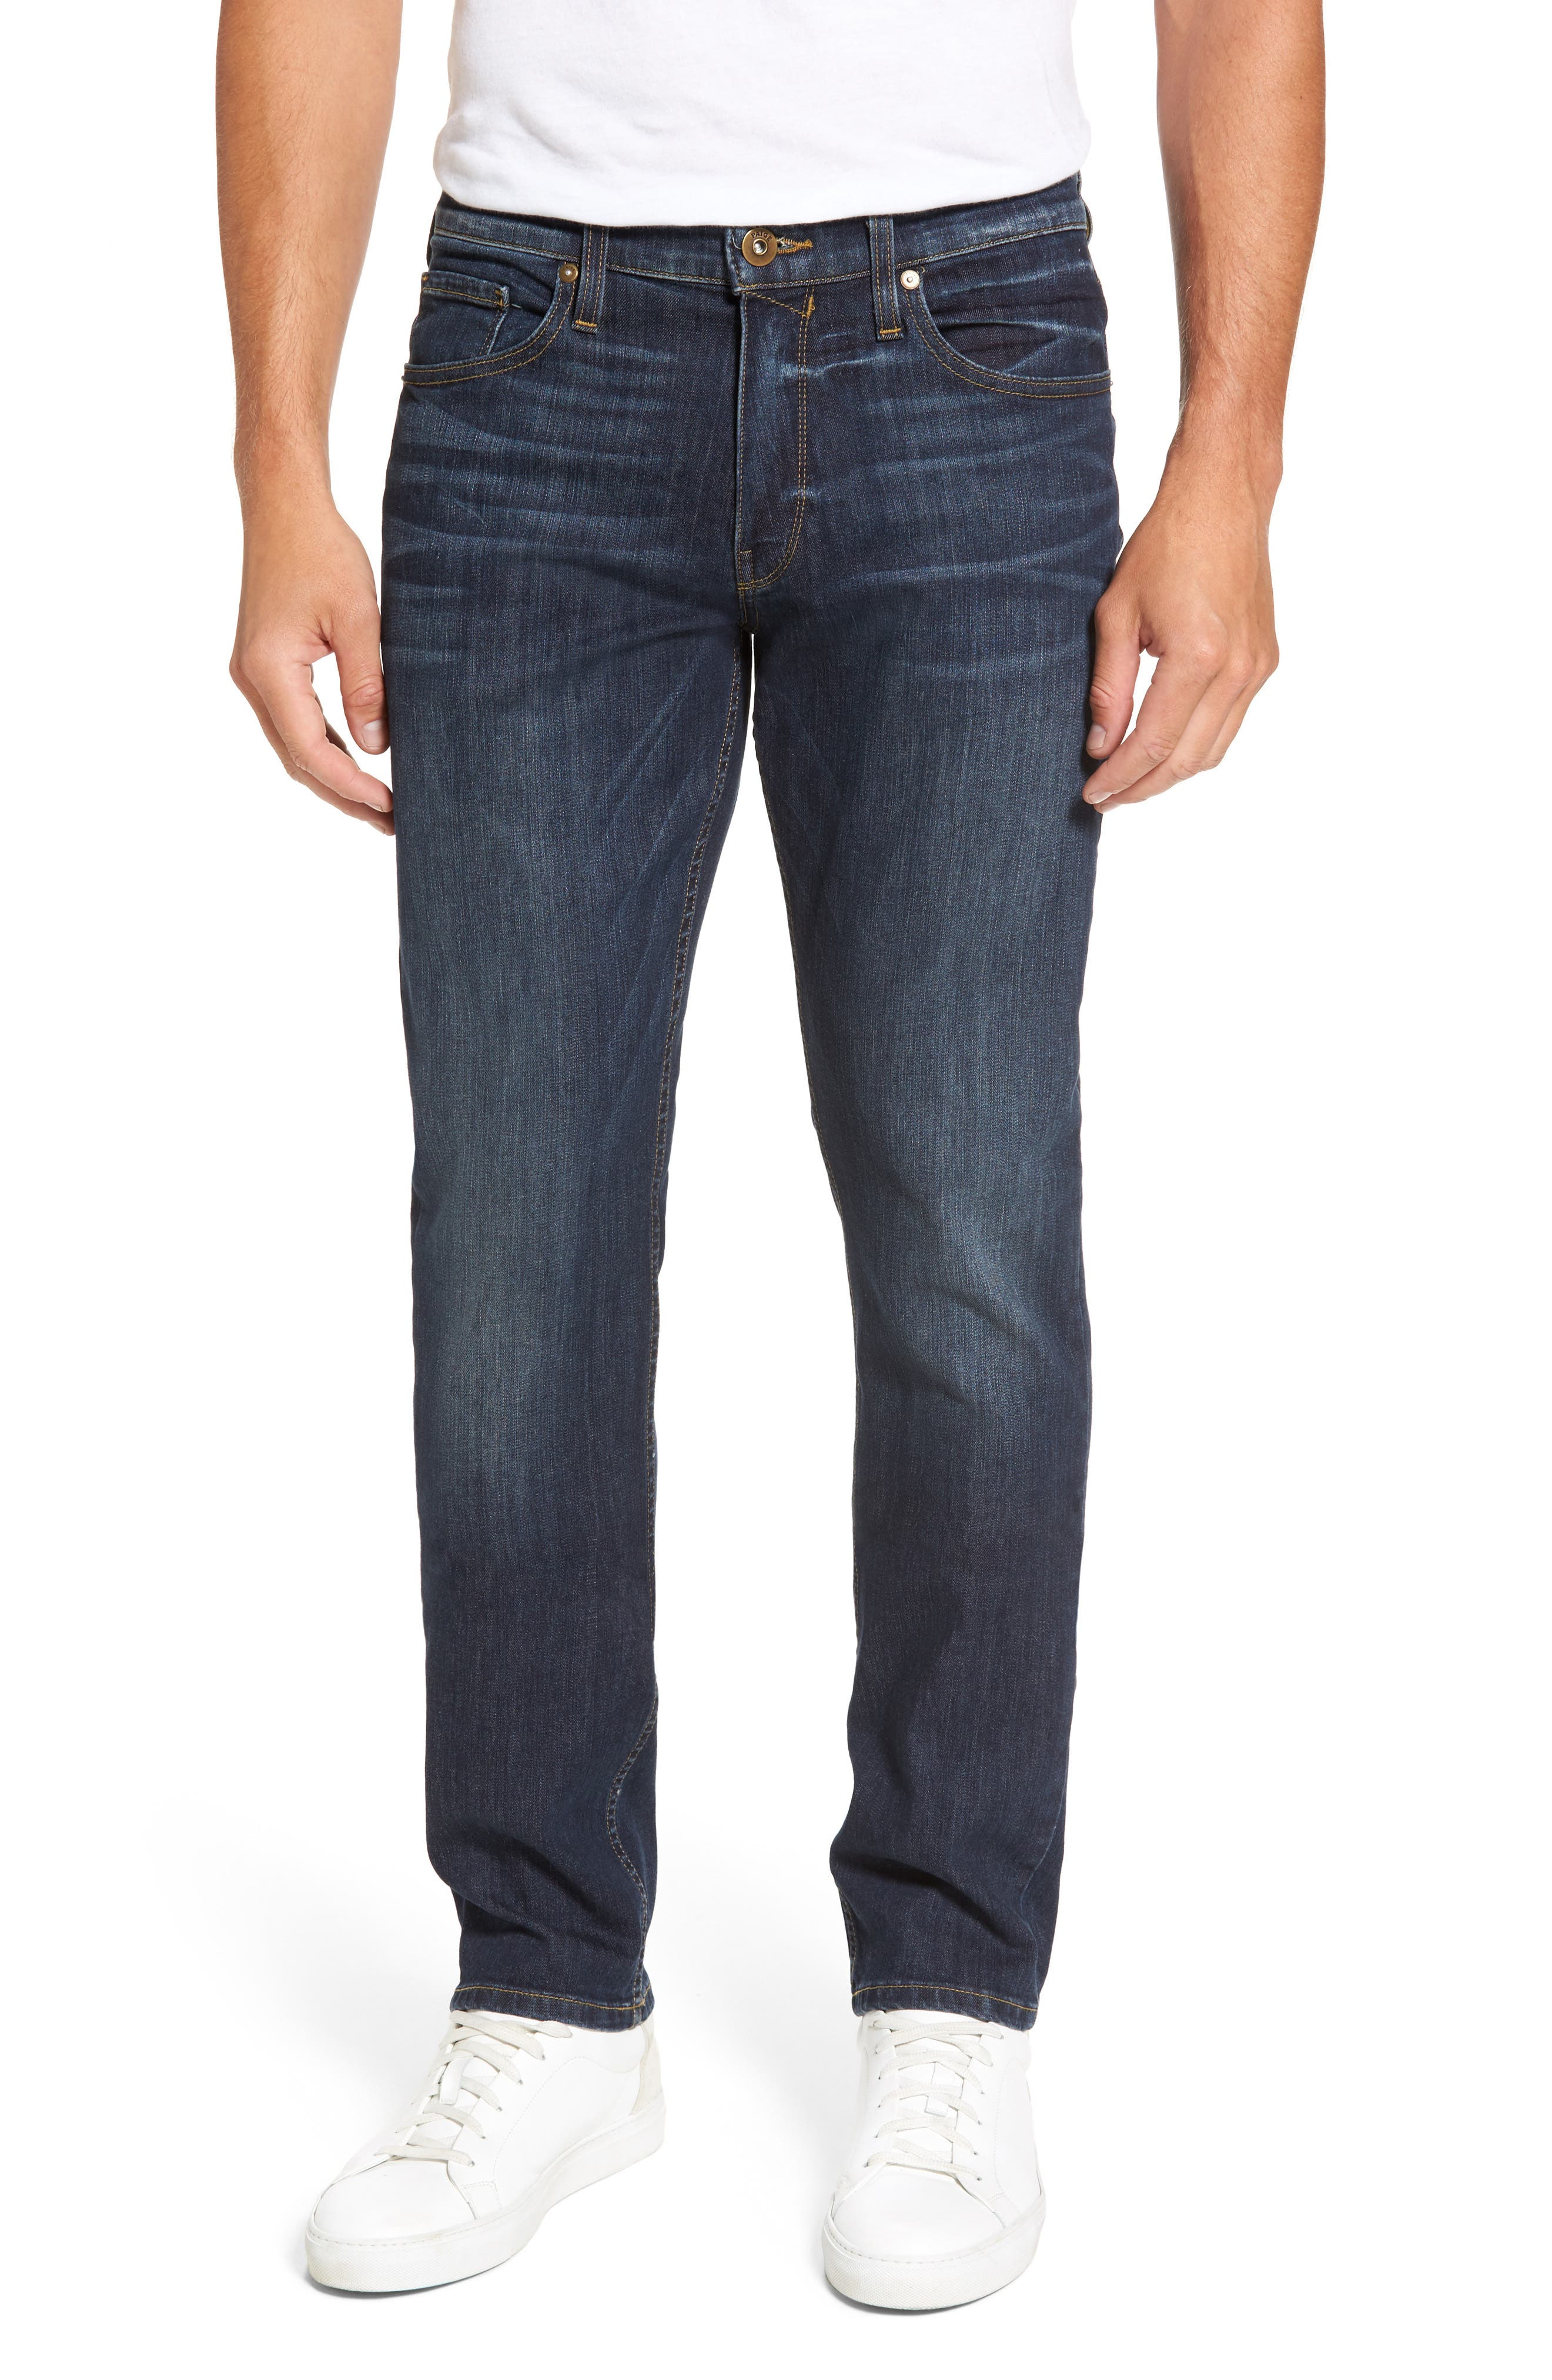 Legacy - Federal Slim Straight Leg Jeans,                         Main,                         color, Jerry